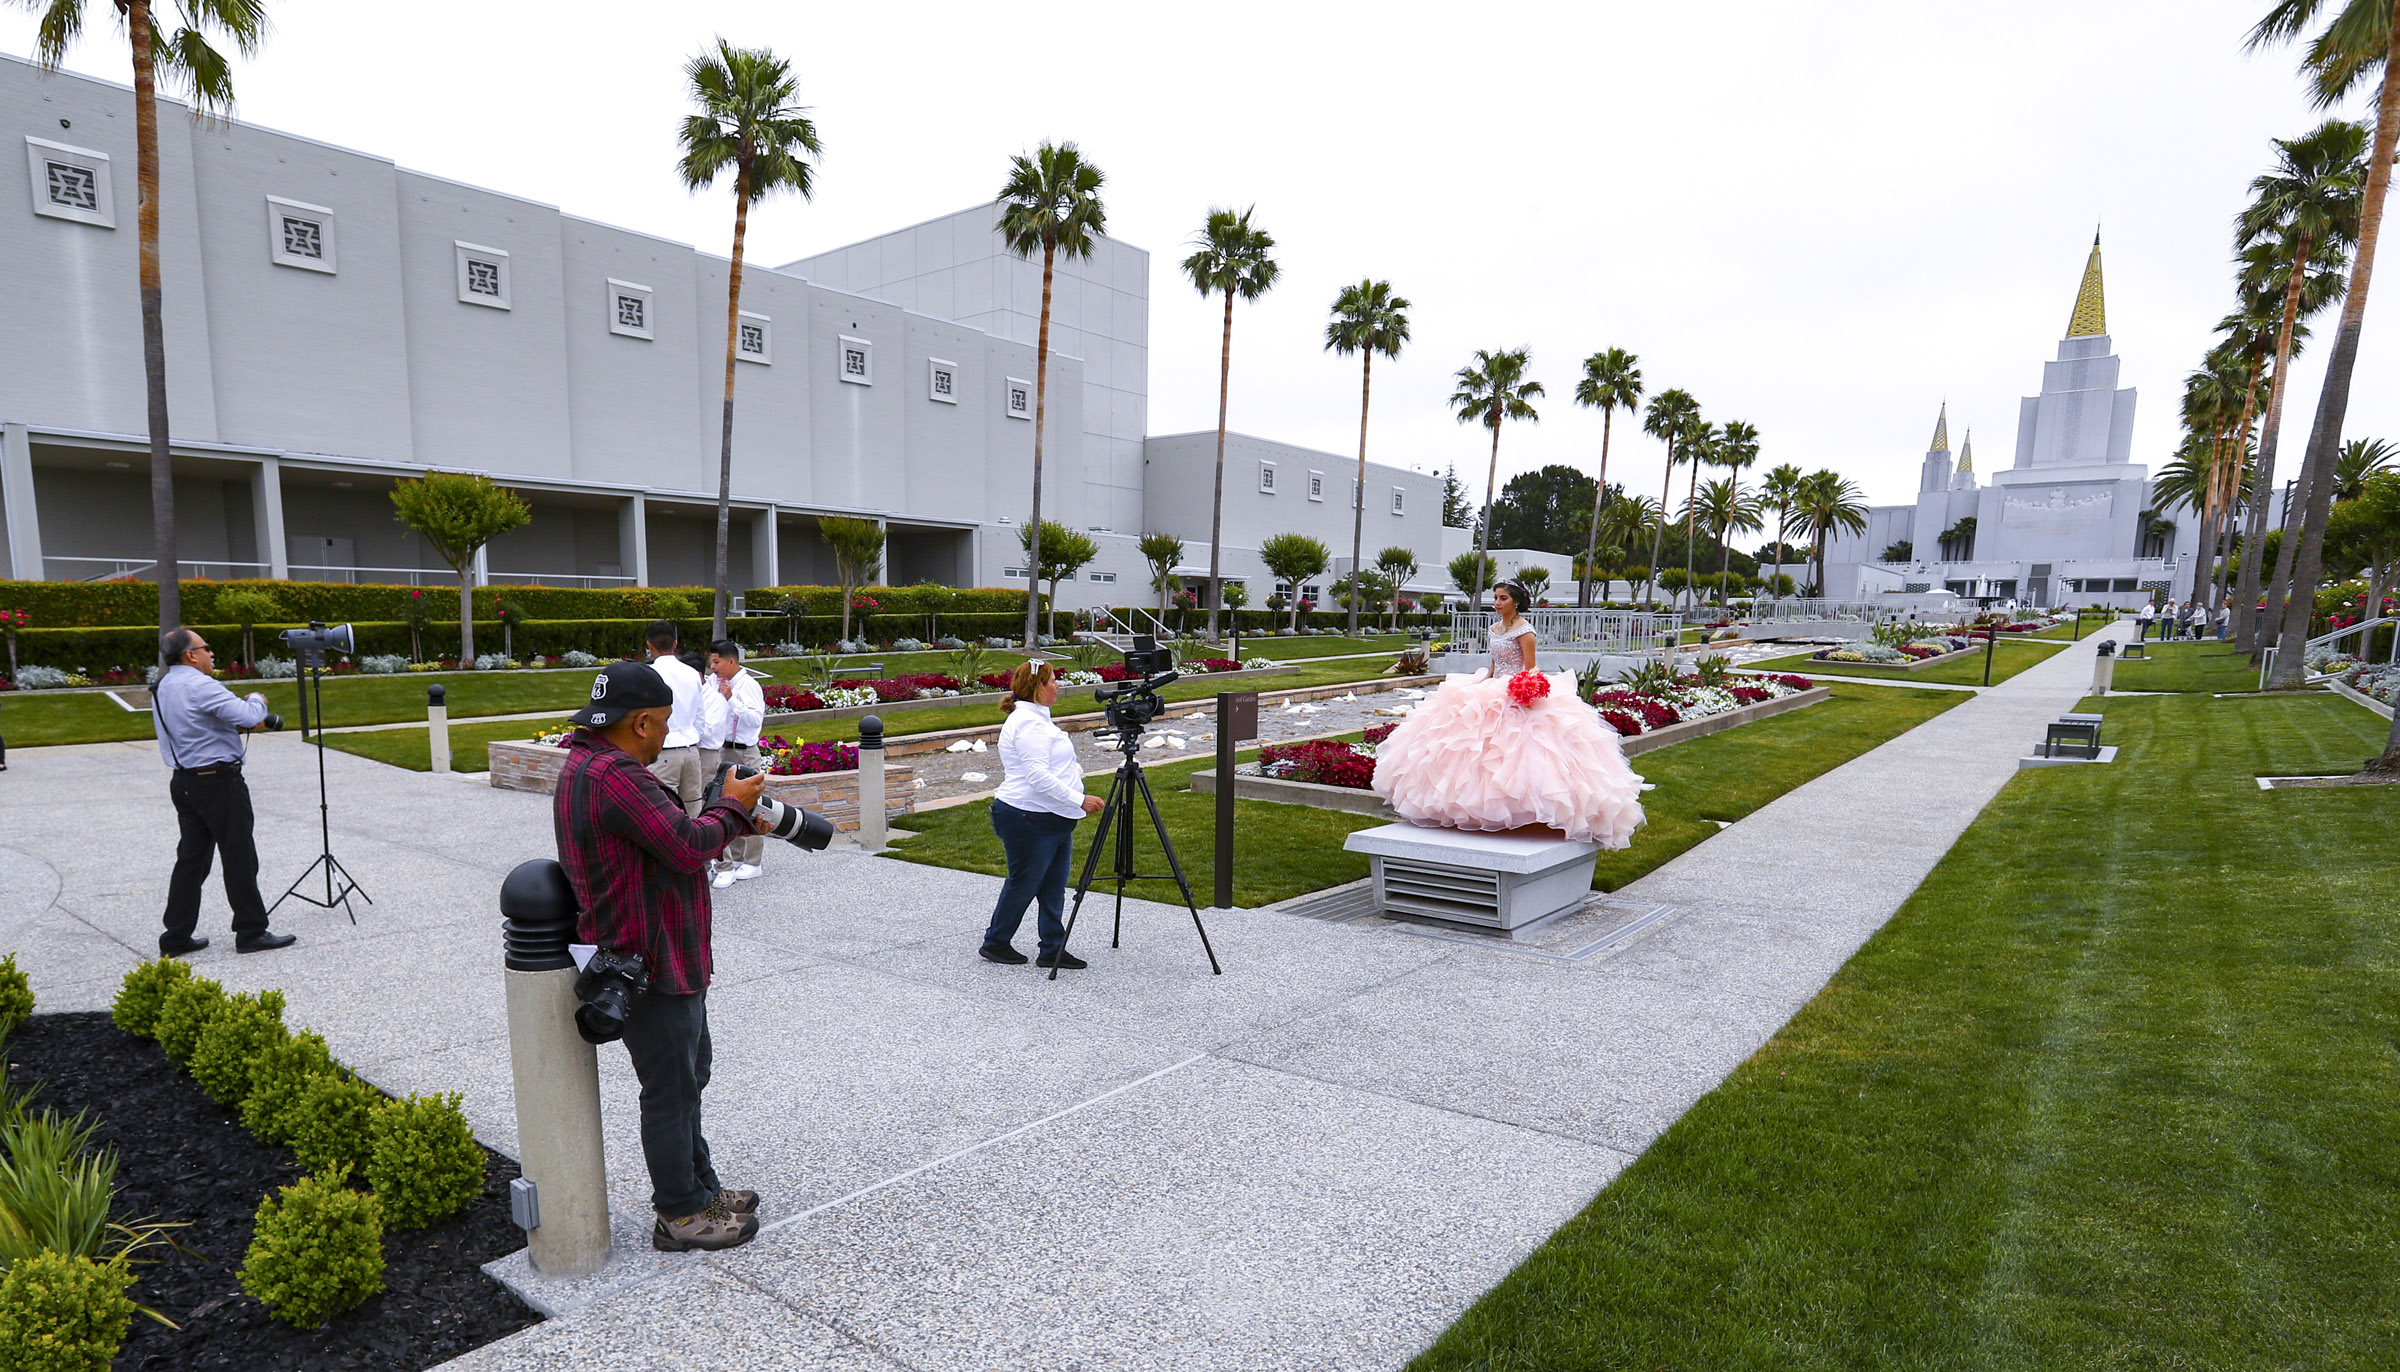 With the Oakland California Temple as a backdrop photographers take quinceanera photos on the grounds on Friday, June 14, 2019.